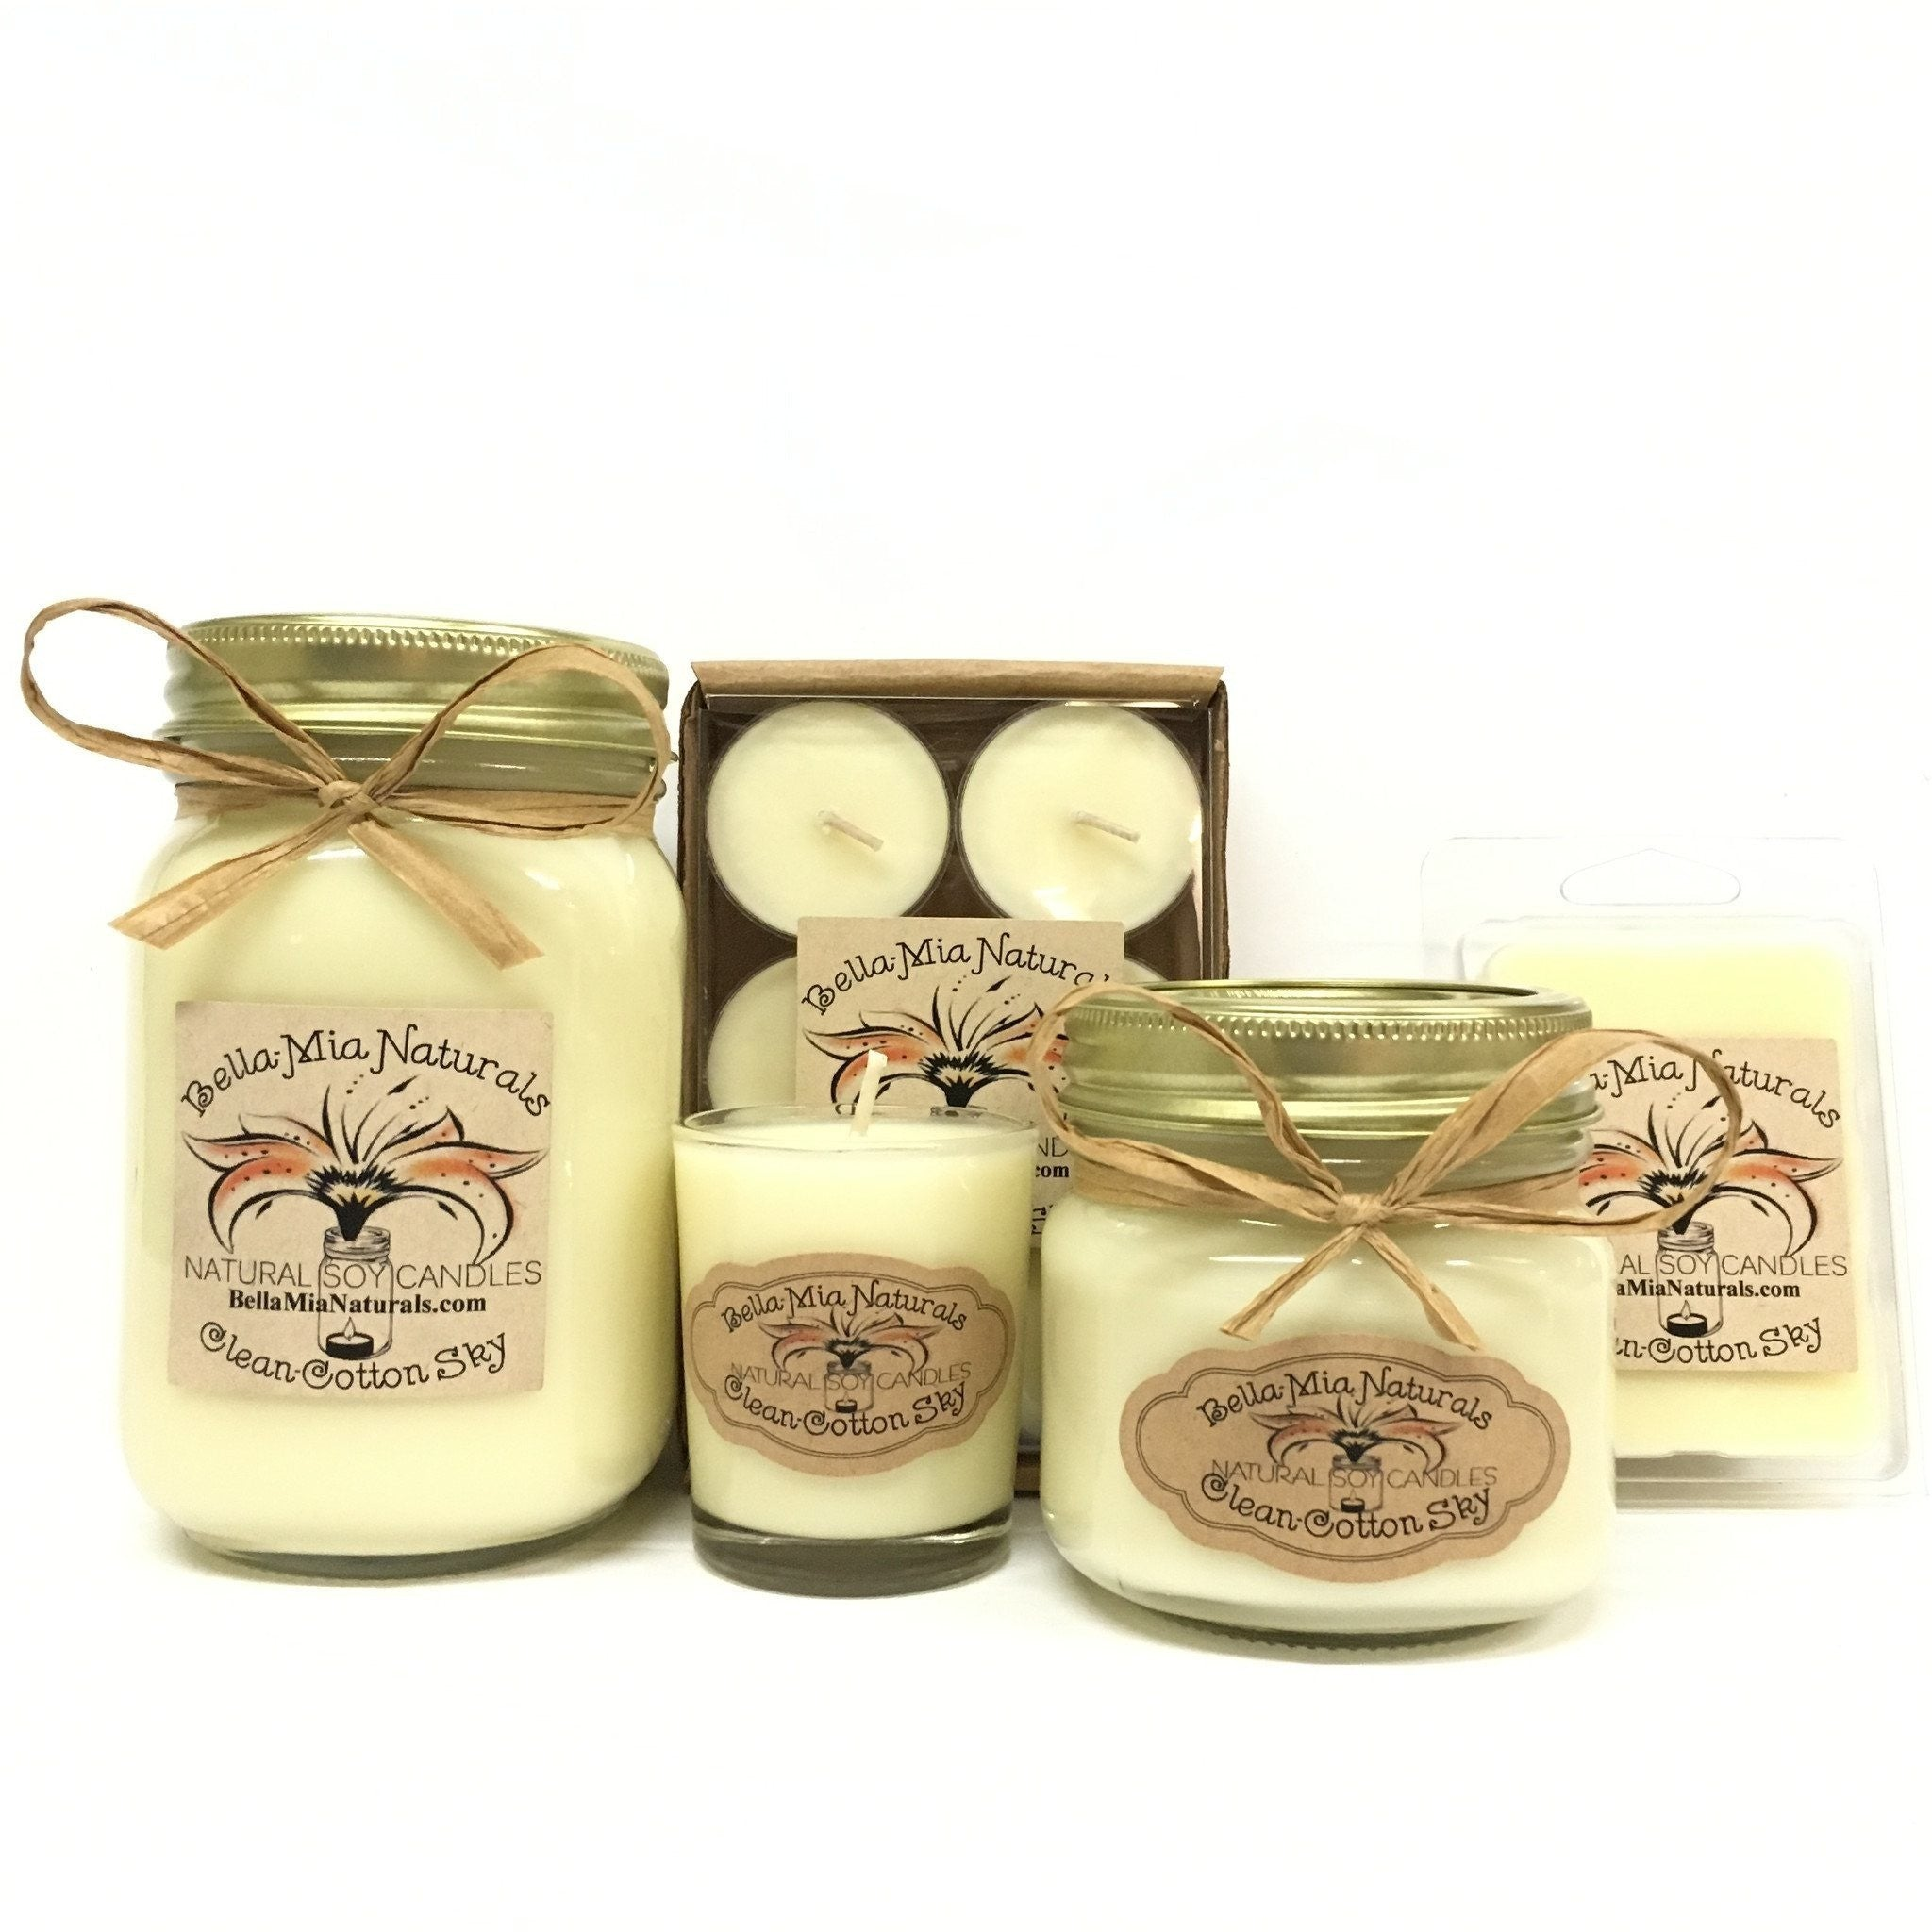 Clean Cotton-Sky Natural Hand Poured Soy Candles -  - Bella-Mia Naturals All Natural Soy Candles & Lip Balms - 1